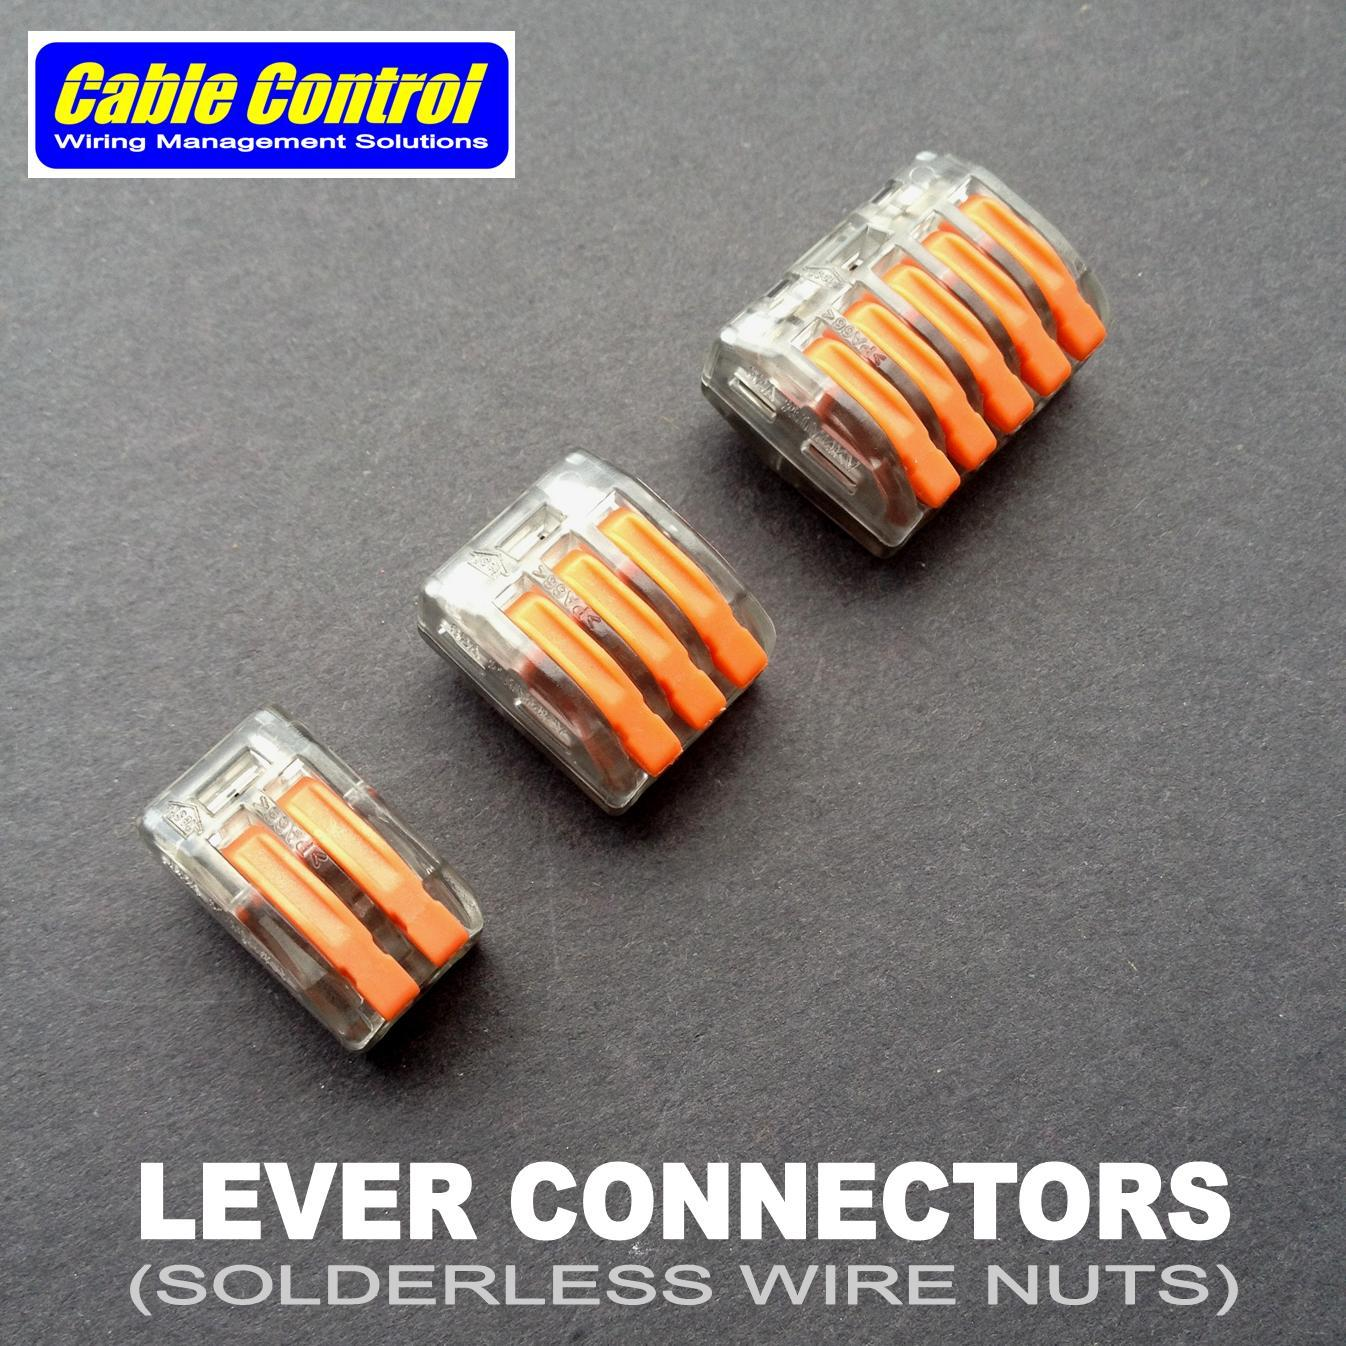 100pcs Universal Compact Conductor Terminal Block With Lever Wago Connector 2 Wire 222 412 Cage Clamp The Garage Manila Cable Control Connectors Type